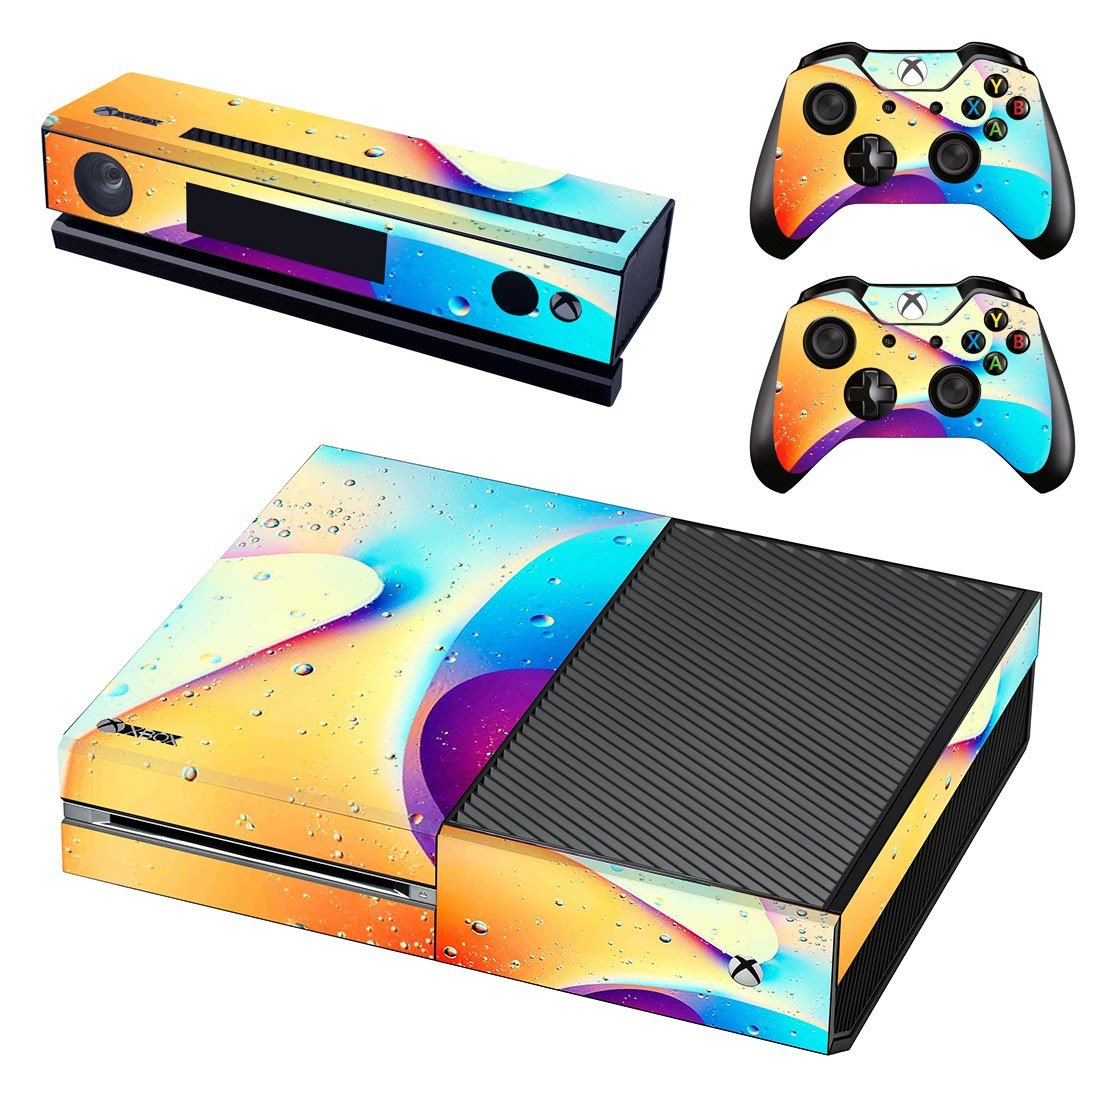 Colorful Shape skin decal for Xbox one console and controllers